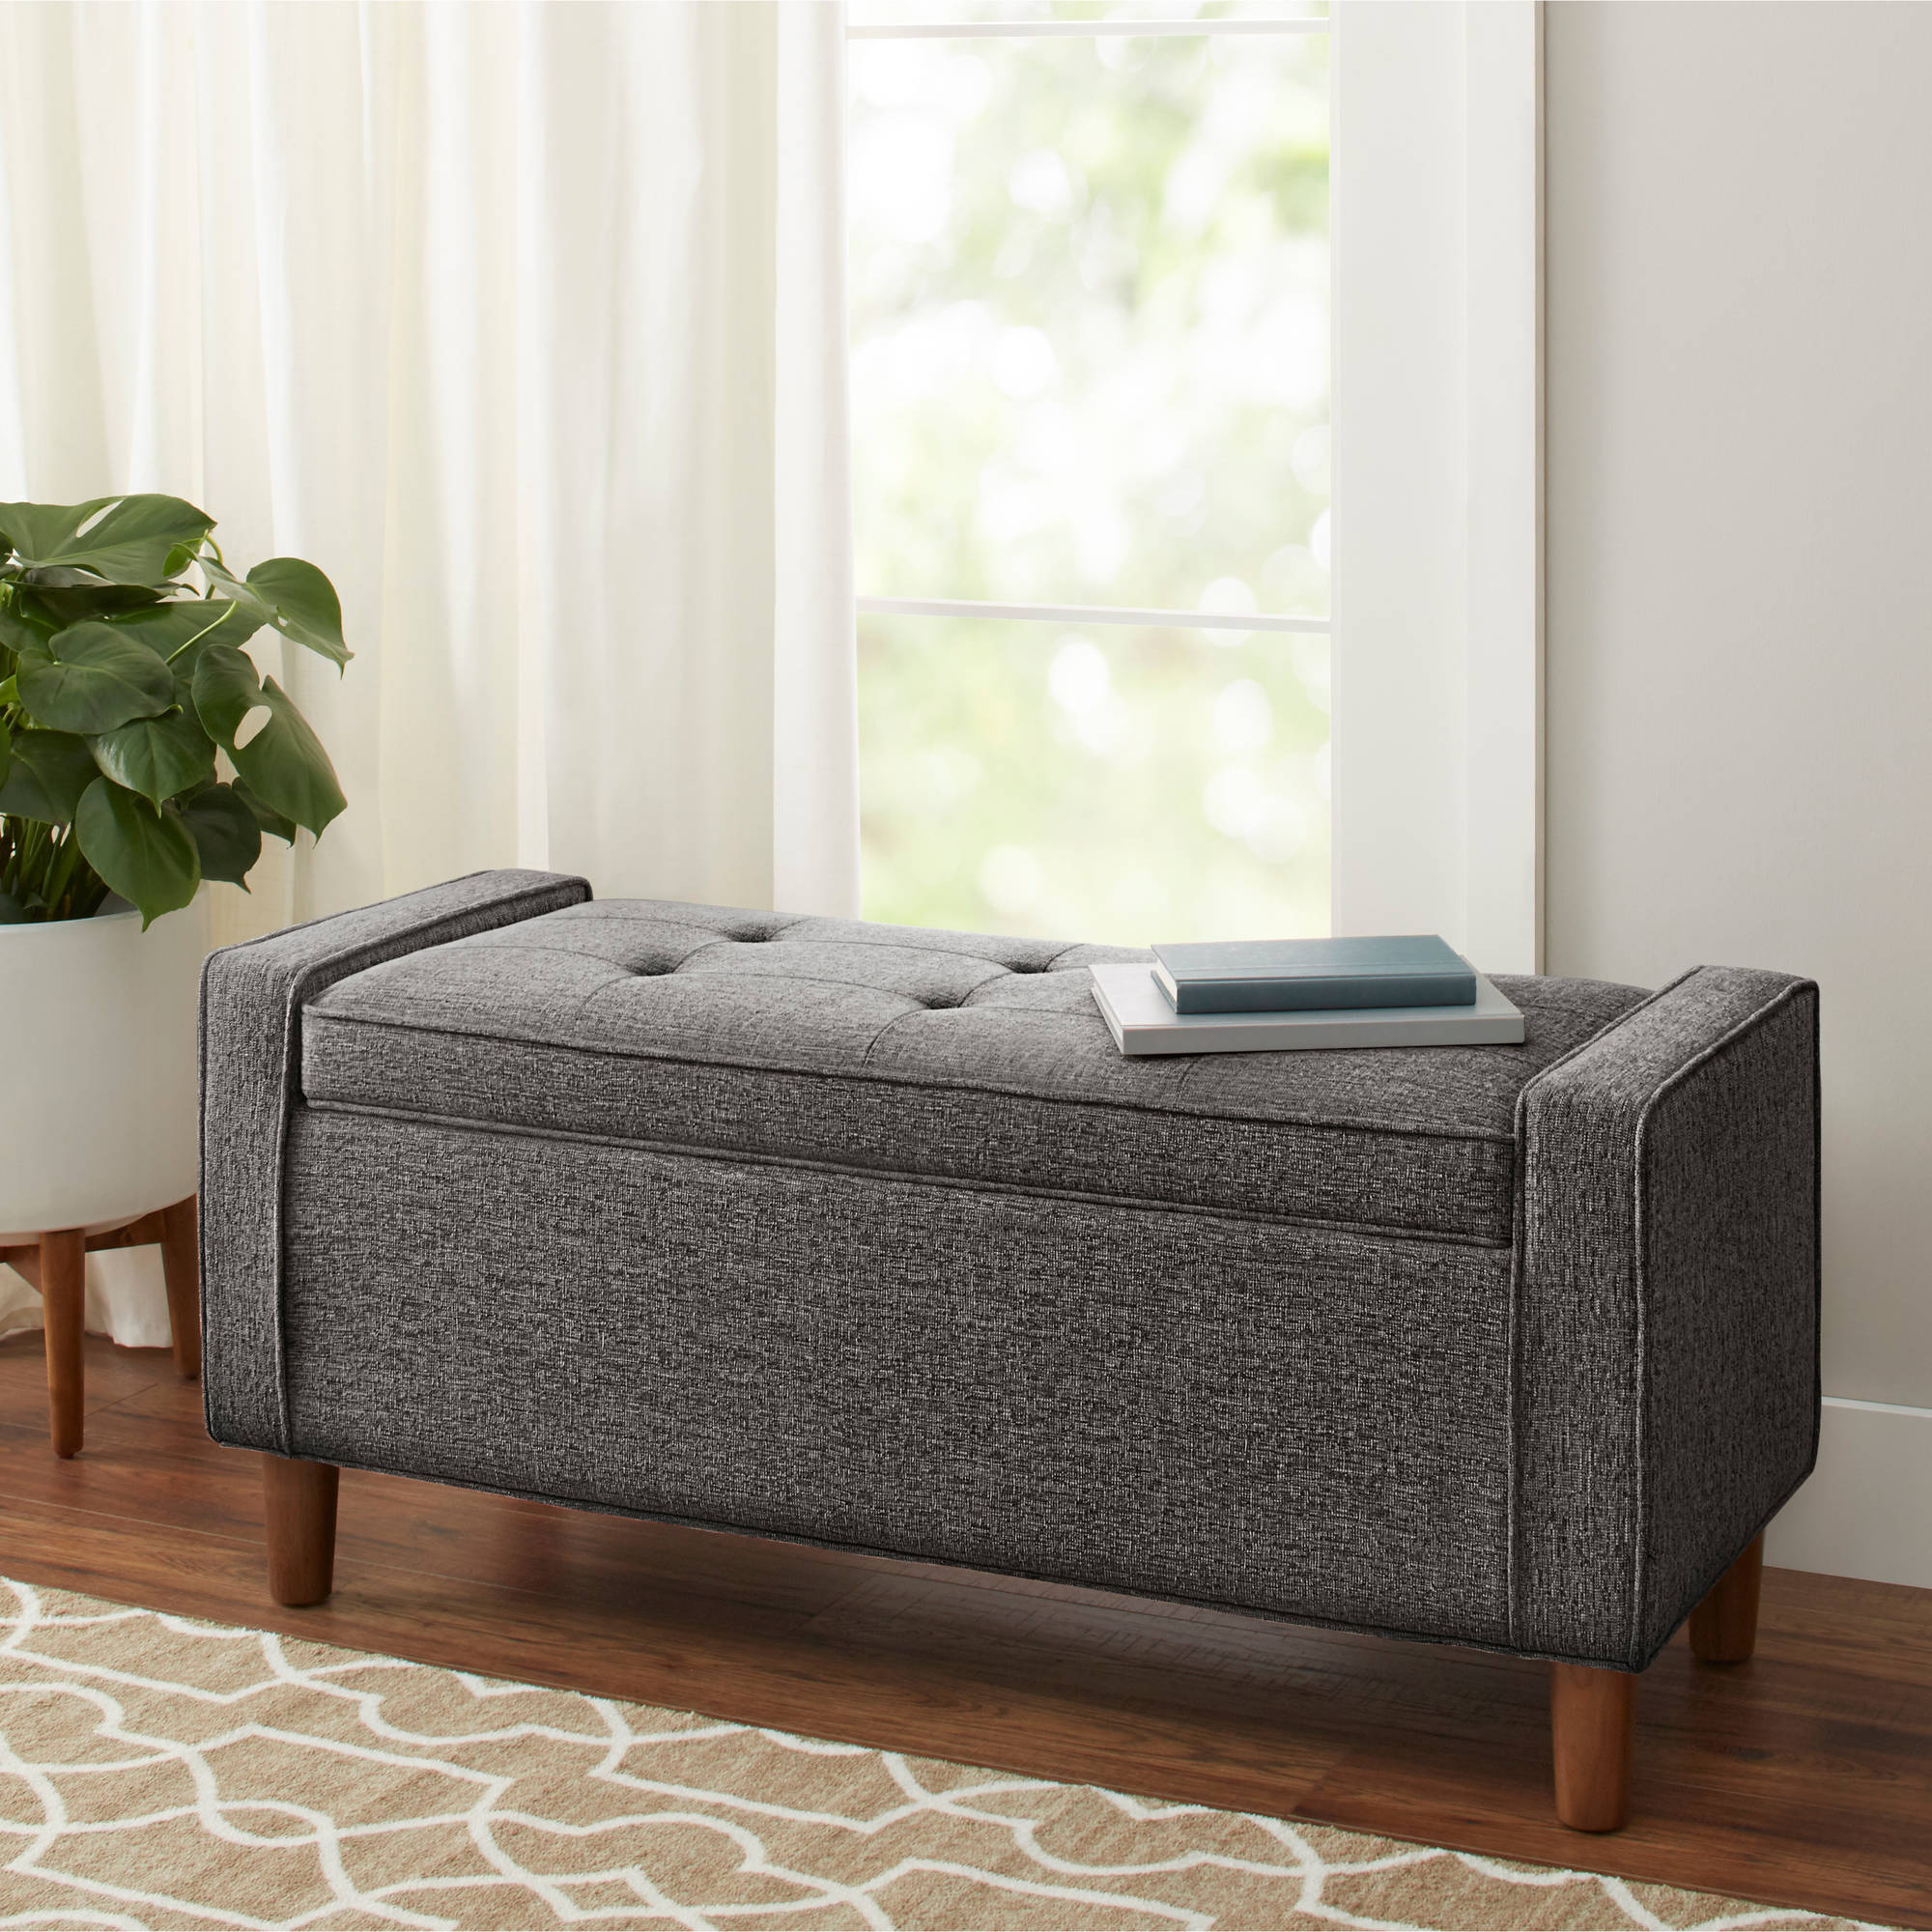 Better Homes And Gardens Flynn Mid Century Modern Upholstered Storage  Bench, Charcoal